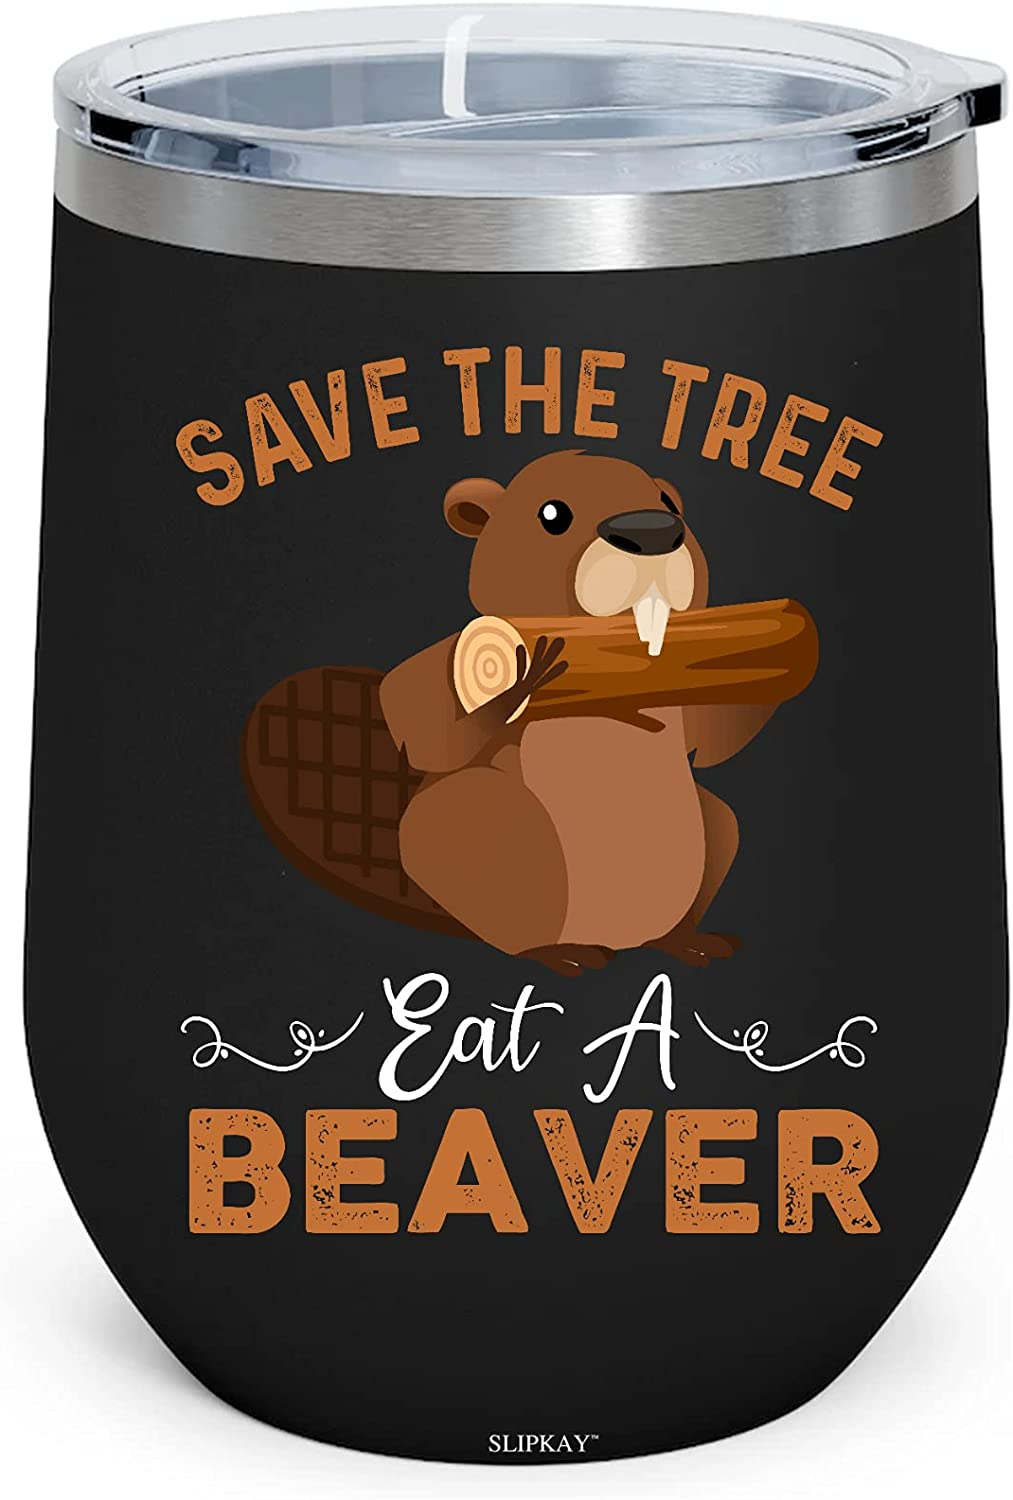 Save The Tree Eat Beaver Earth Insulated W Lover Planet 12oz Free shipping Topics on TV New